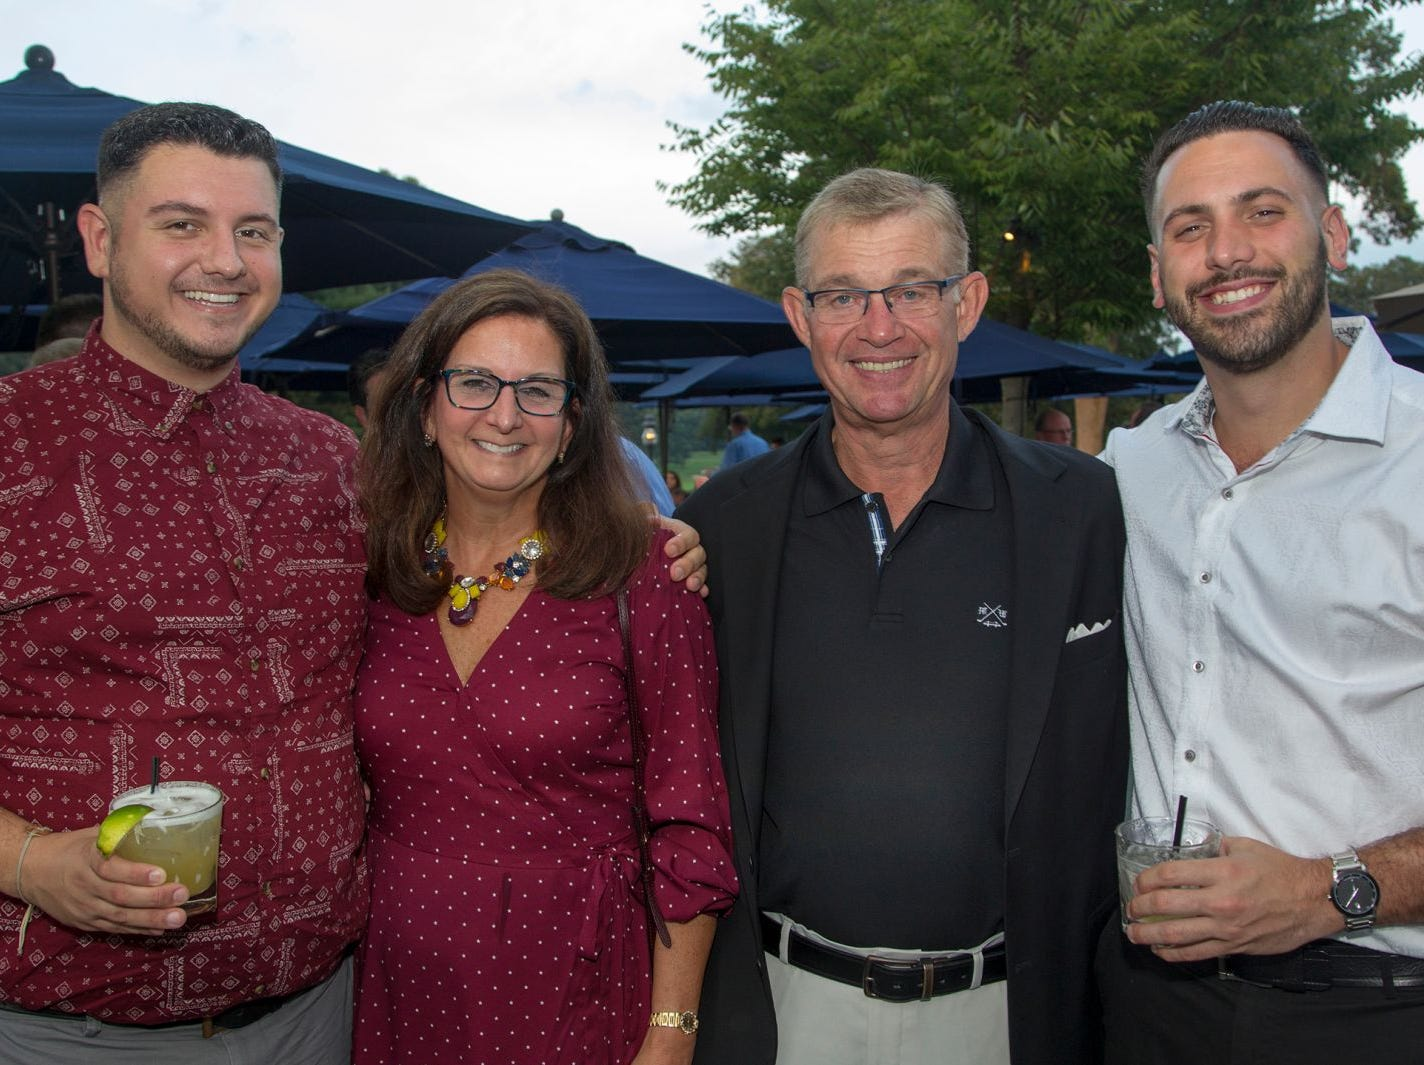 Dan Salerno, Joanne Salerno, Frank Salerno, Joey Unrein. Institute for Educational Achievement held its 23rd annual Golf Classic at Hackensack Golf Club in Oradell. 10/01/2018